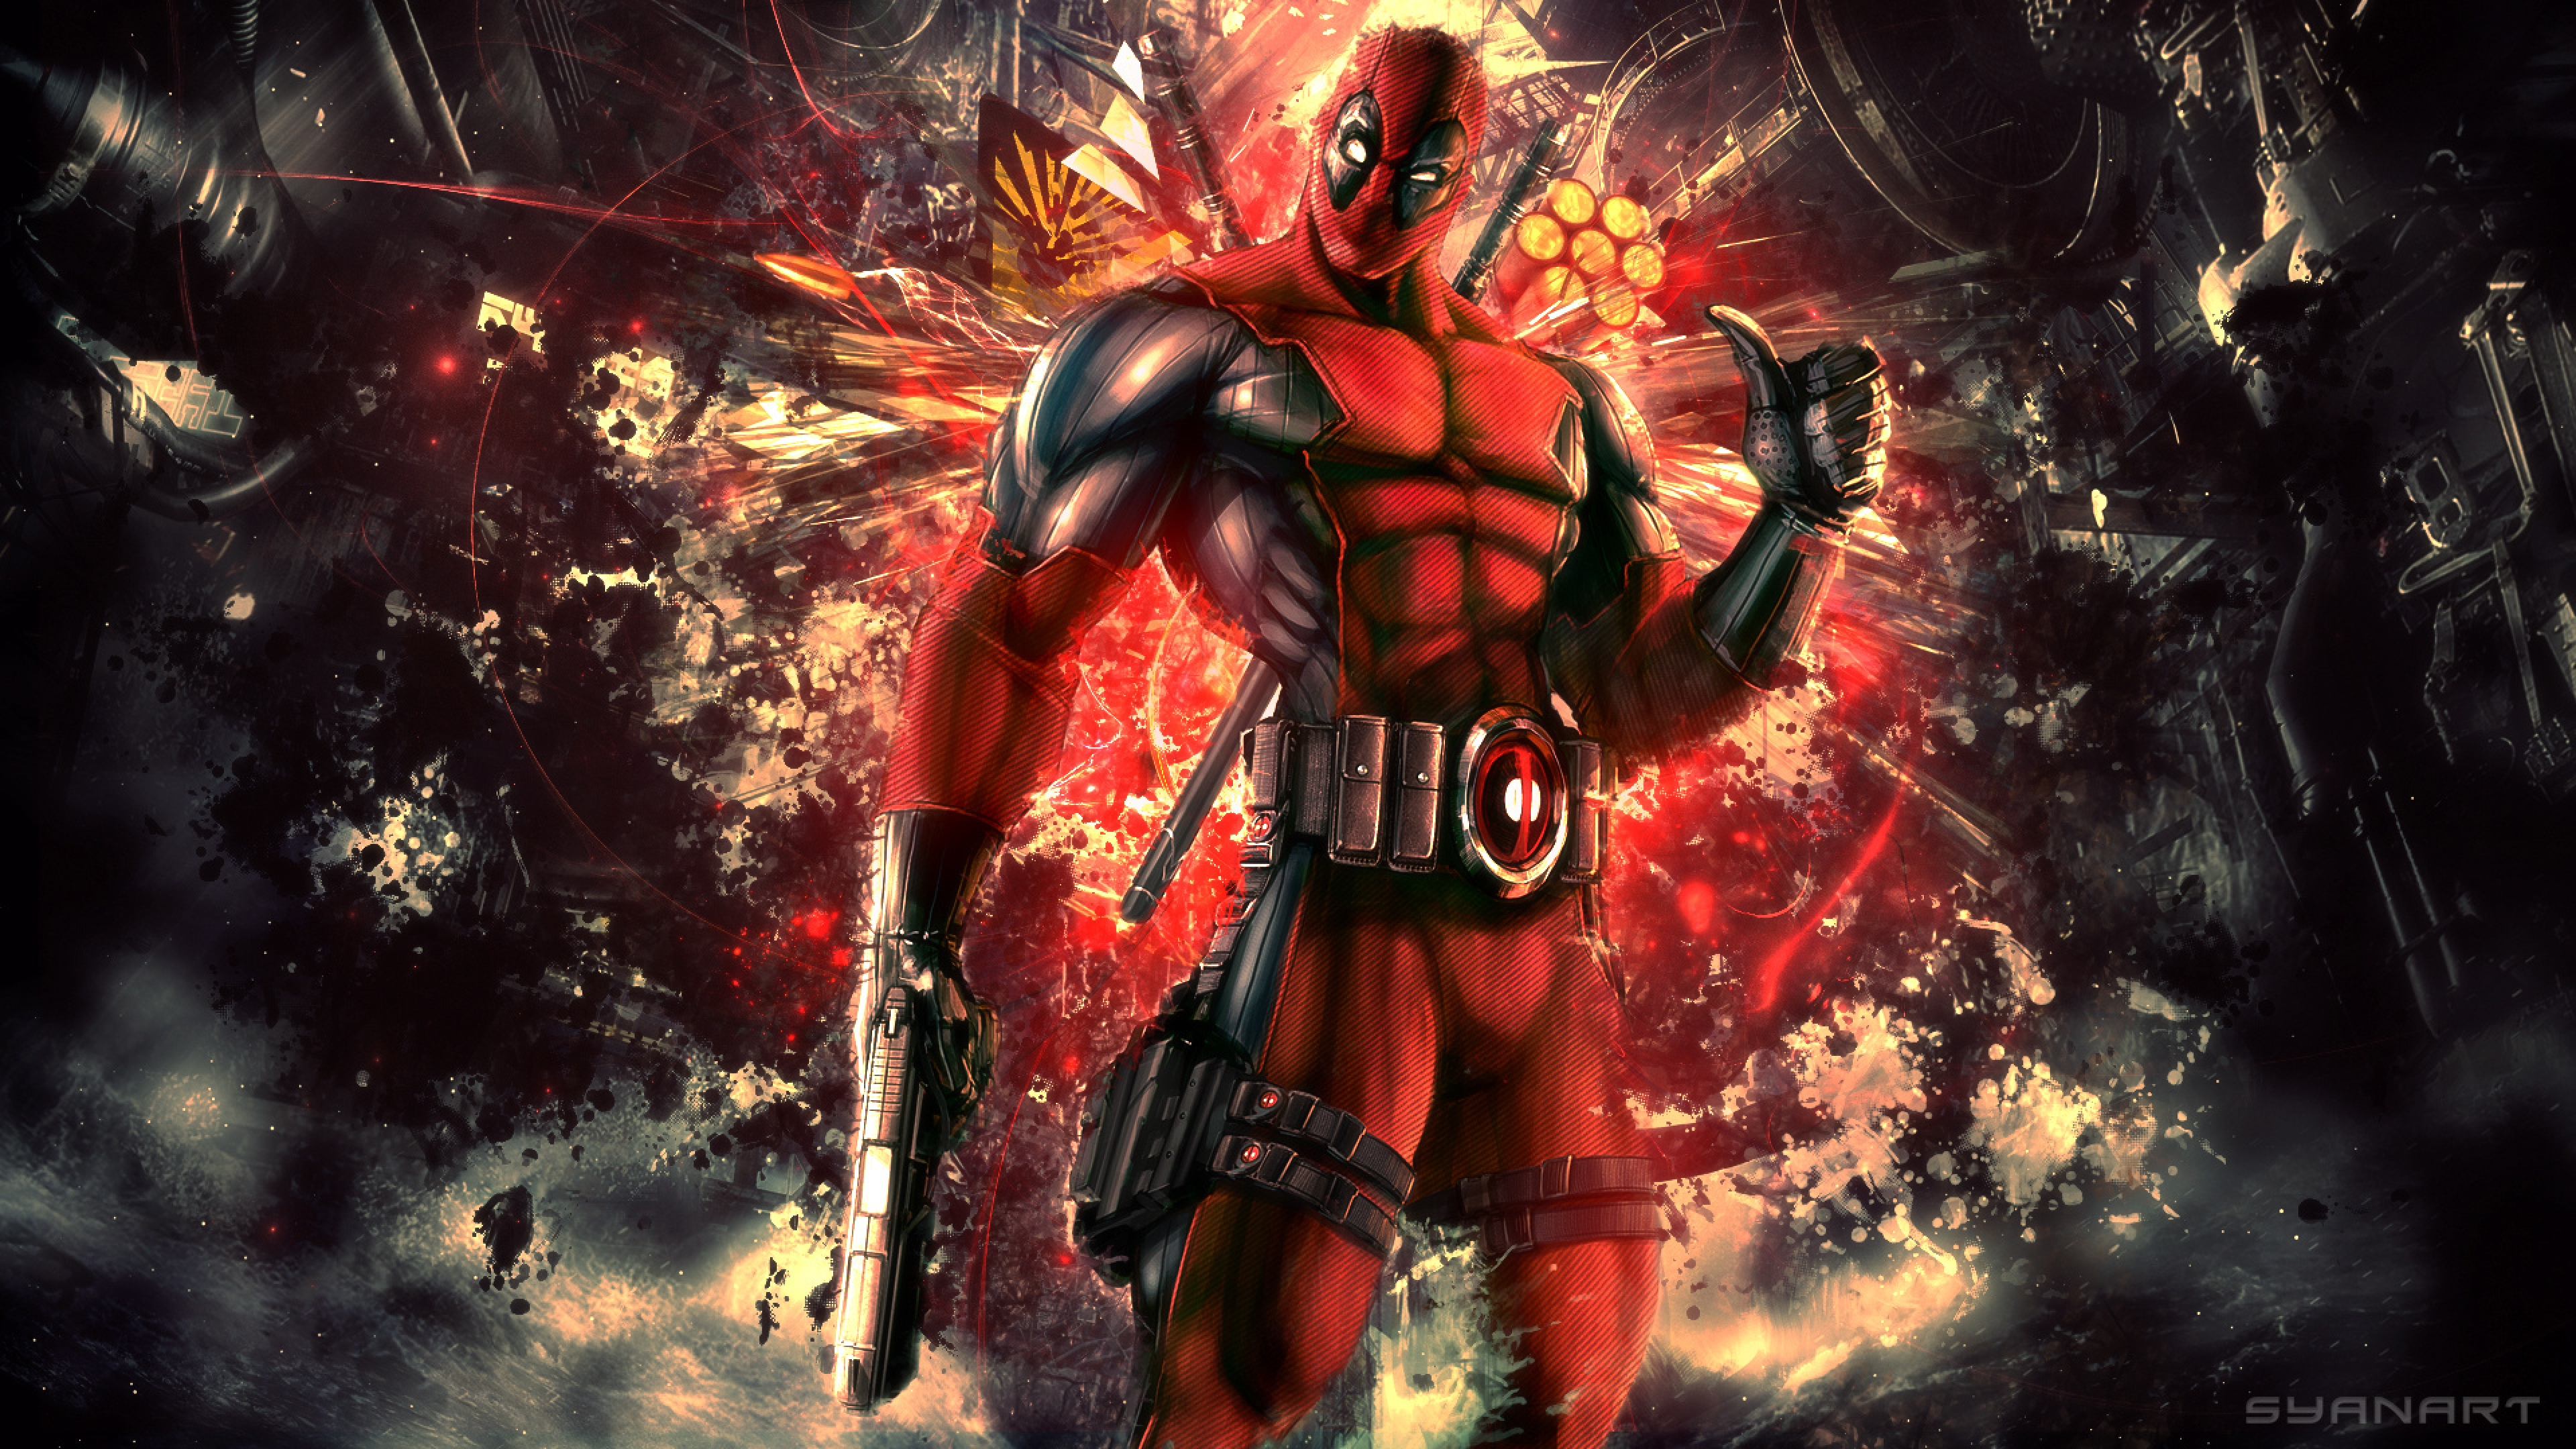 Download Wallpaper 3840x2160 Deadpool Abstract Mercenary Anti hero 3840x2160